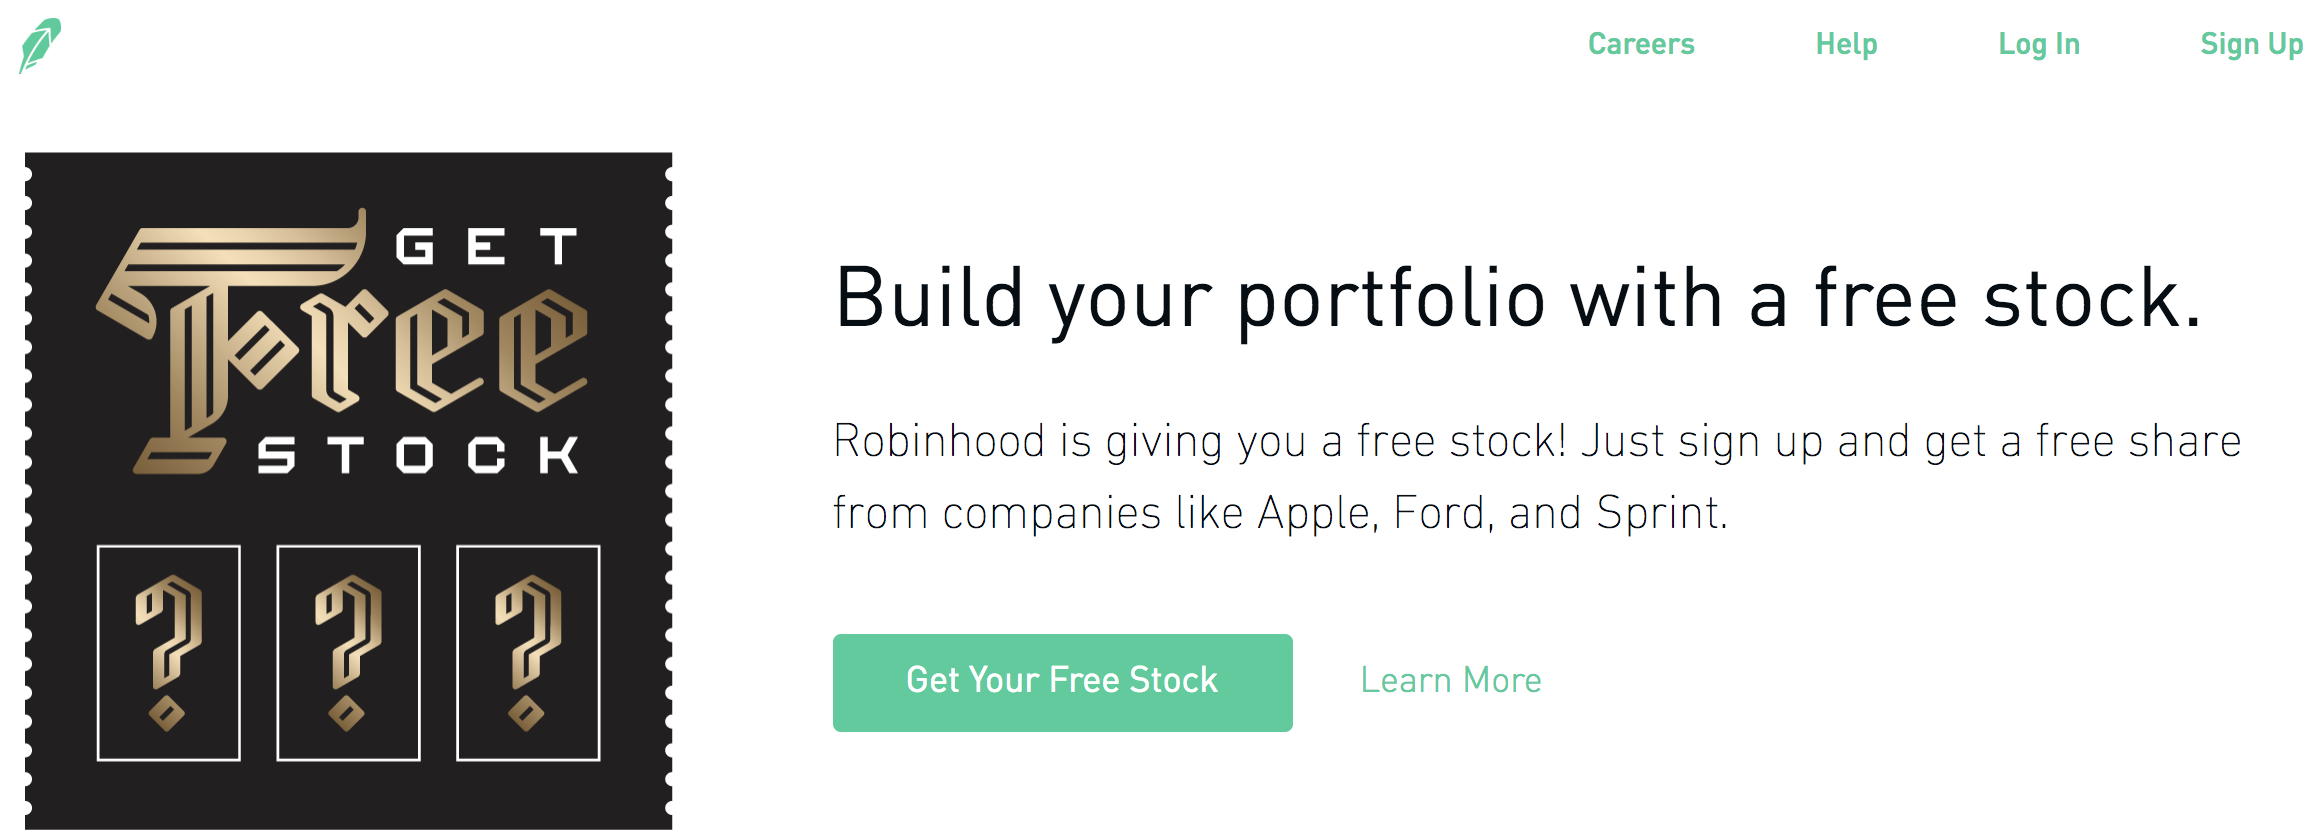 777574337dda How to Get Free Stock (An Offer from Robinhood)